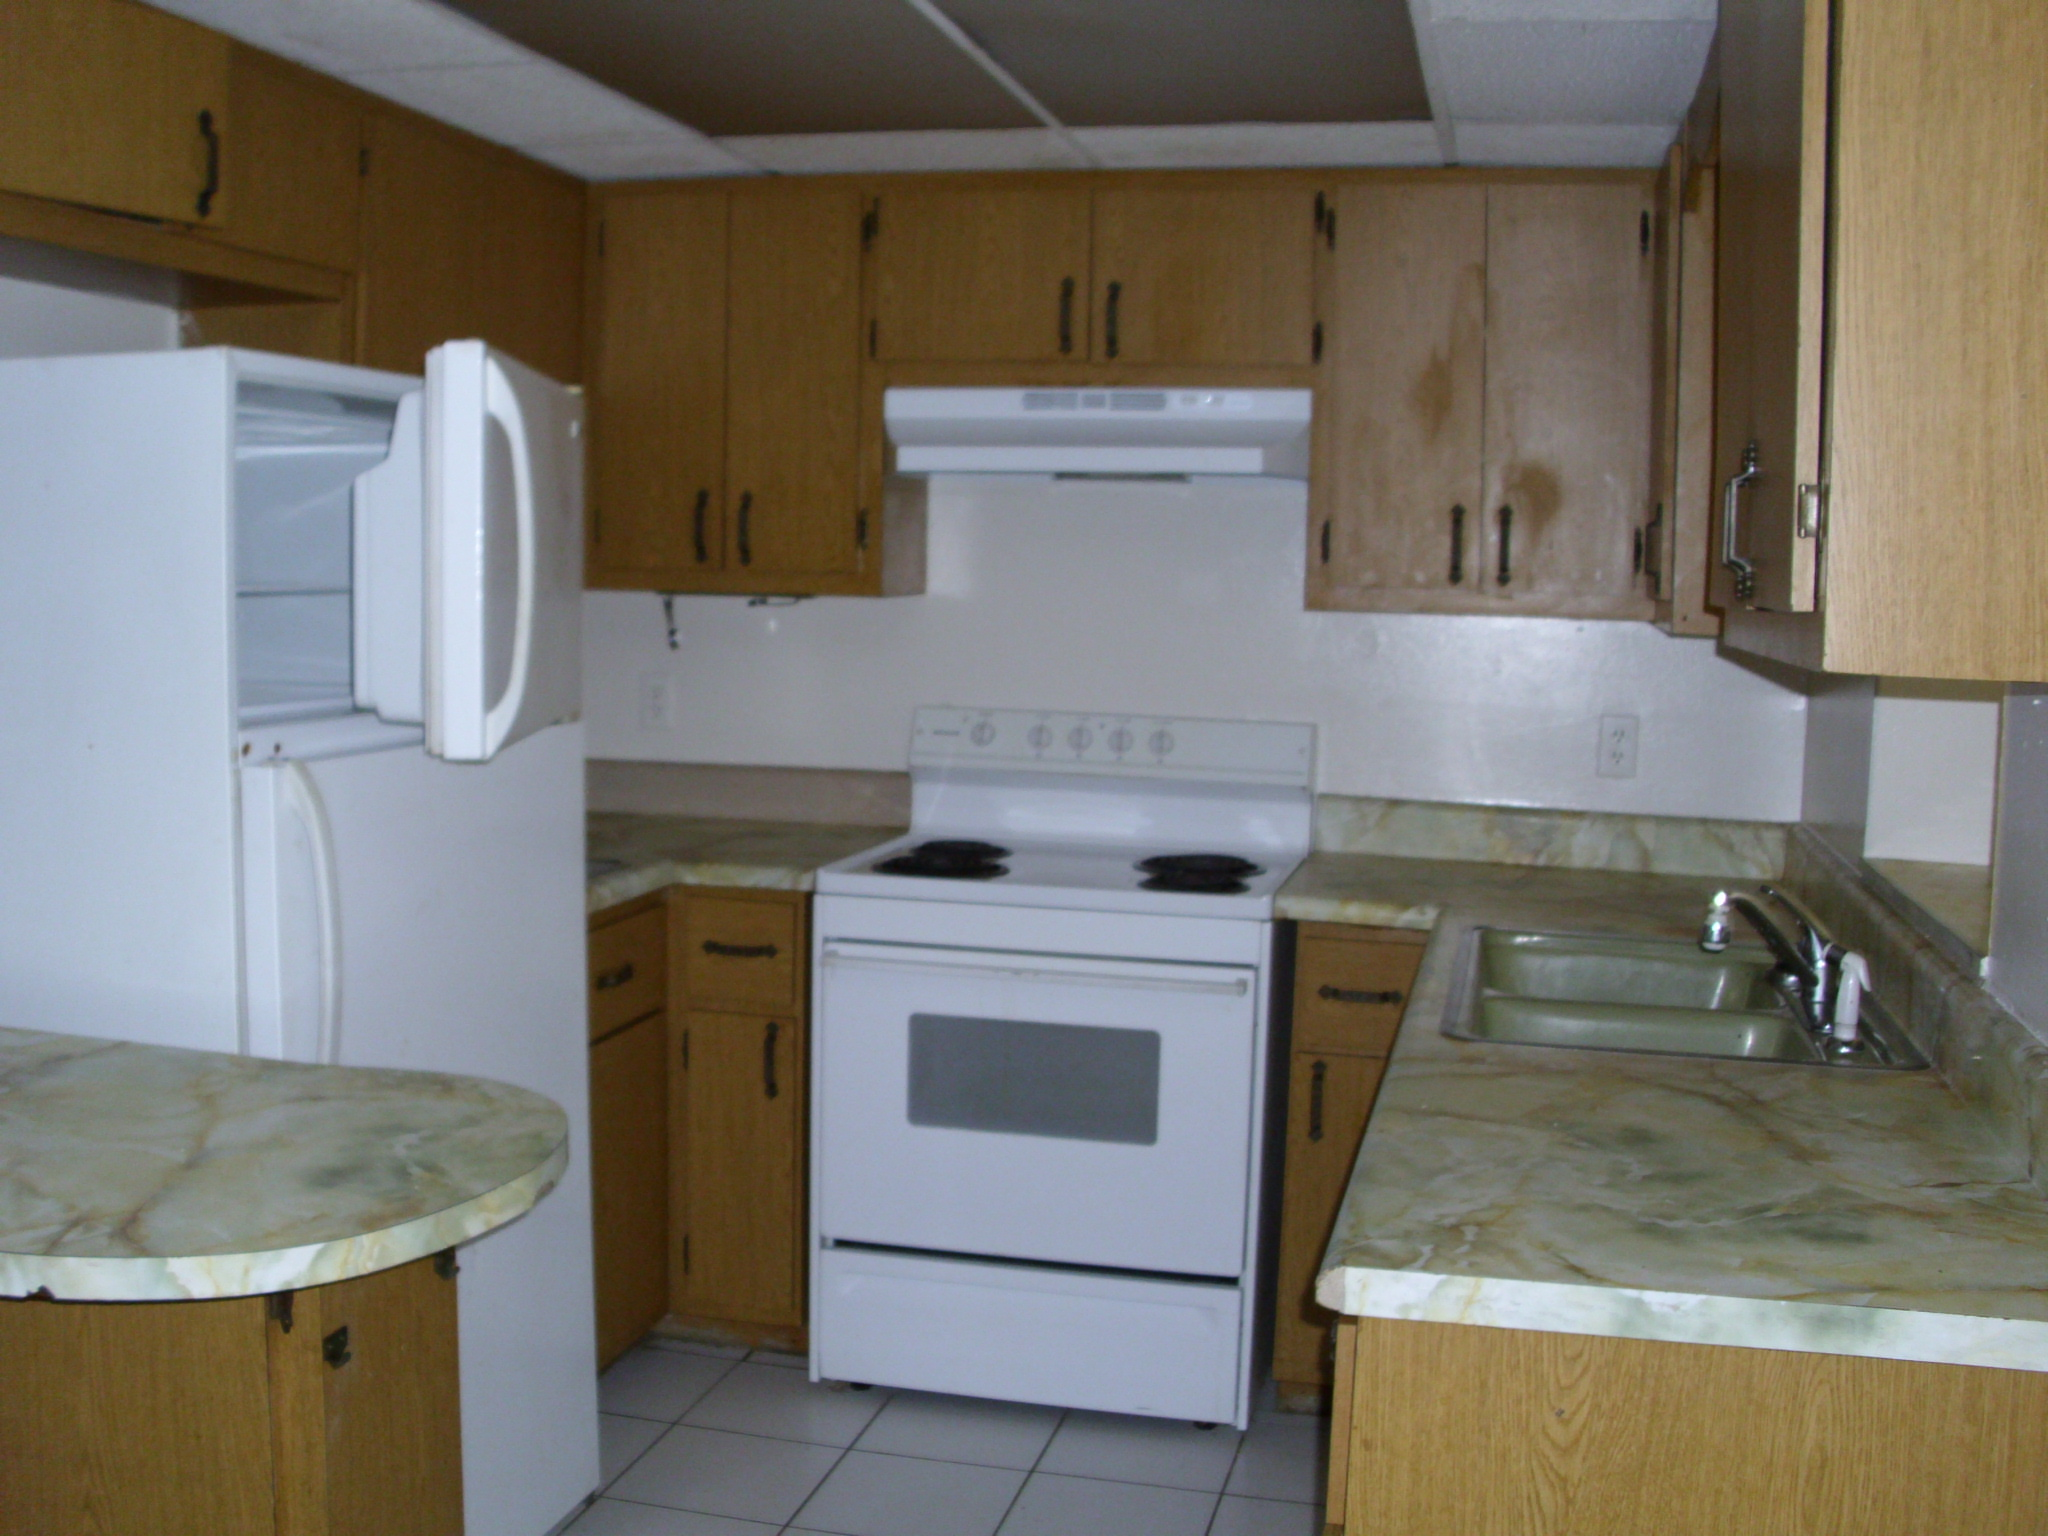 Cheap Rent Mobile Homes  Apartments  Houses  Warehouses Ft Myers   Cheap  Rent on Mobile Homes Apartments Houses Warehouses Fort Myers Florida. Cheap Rent Mobile Homes  Apartments  Houses  Warehouses Ft Myers